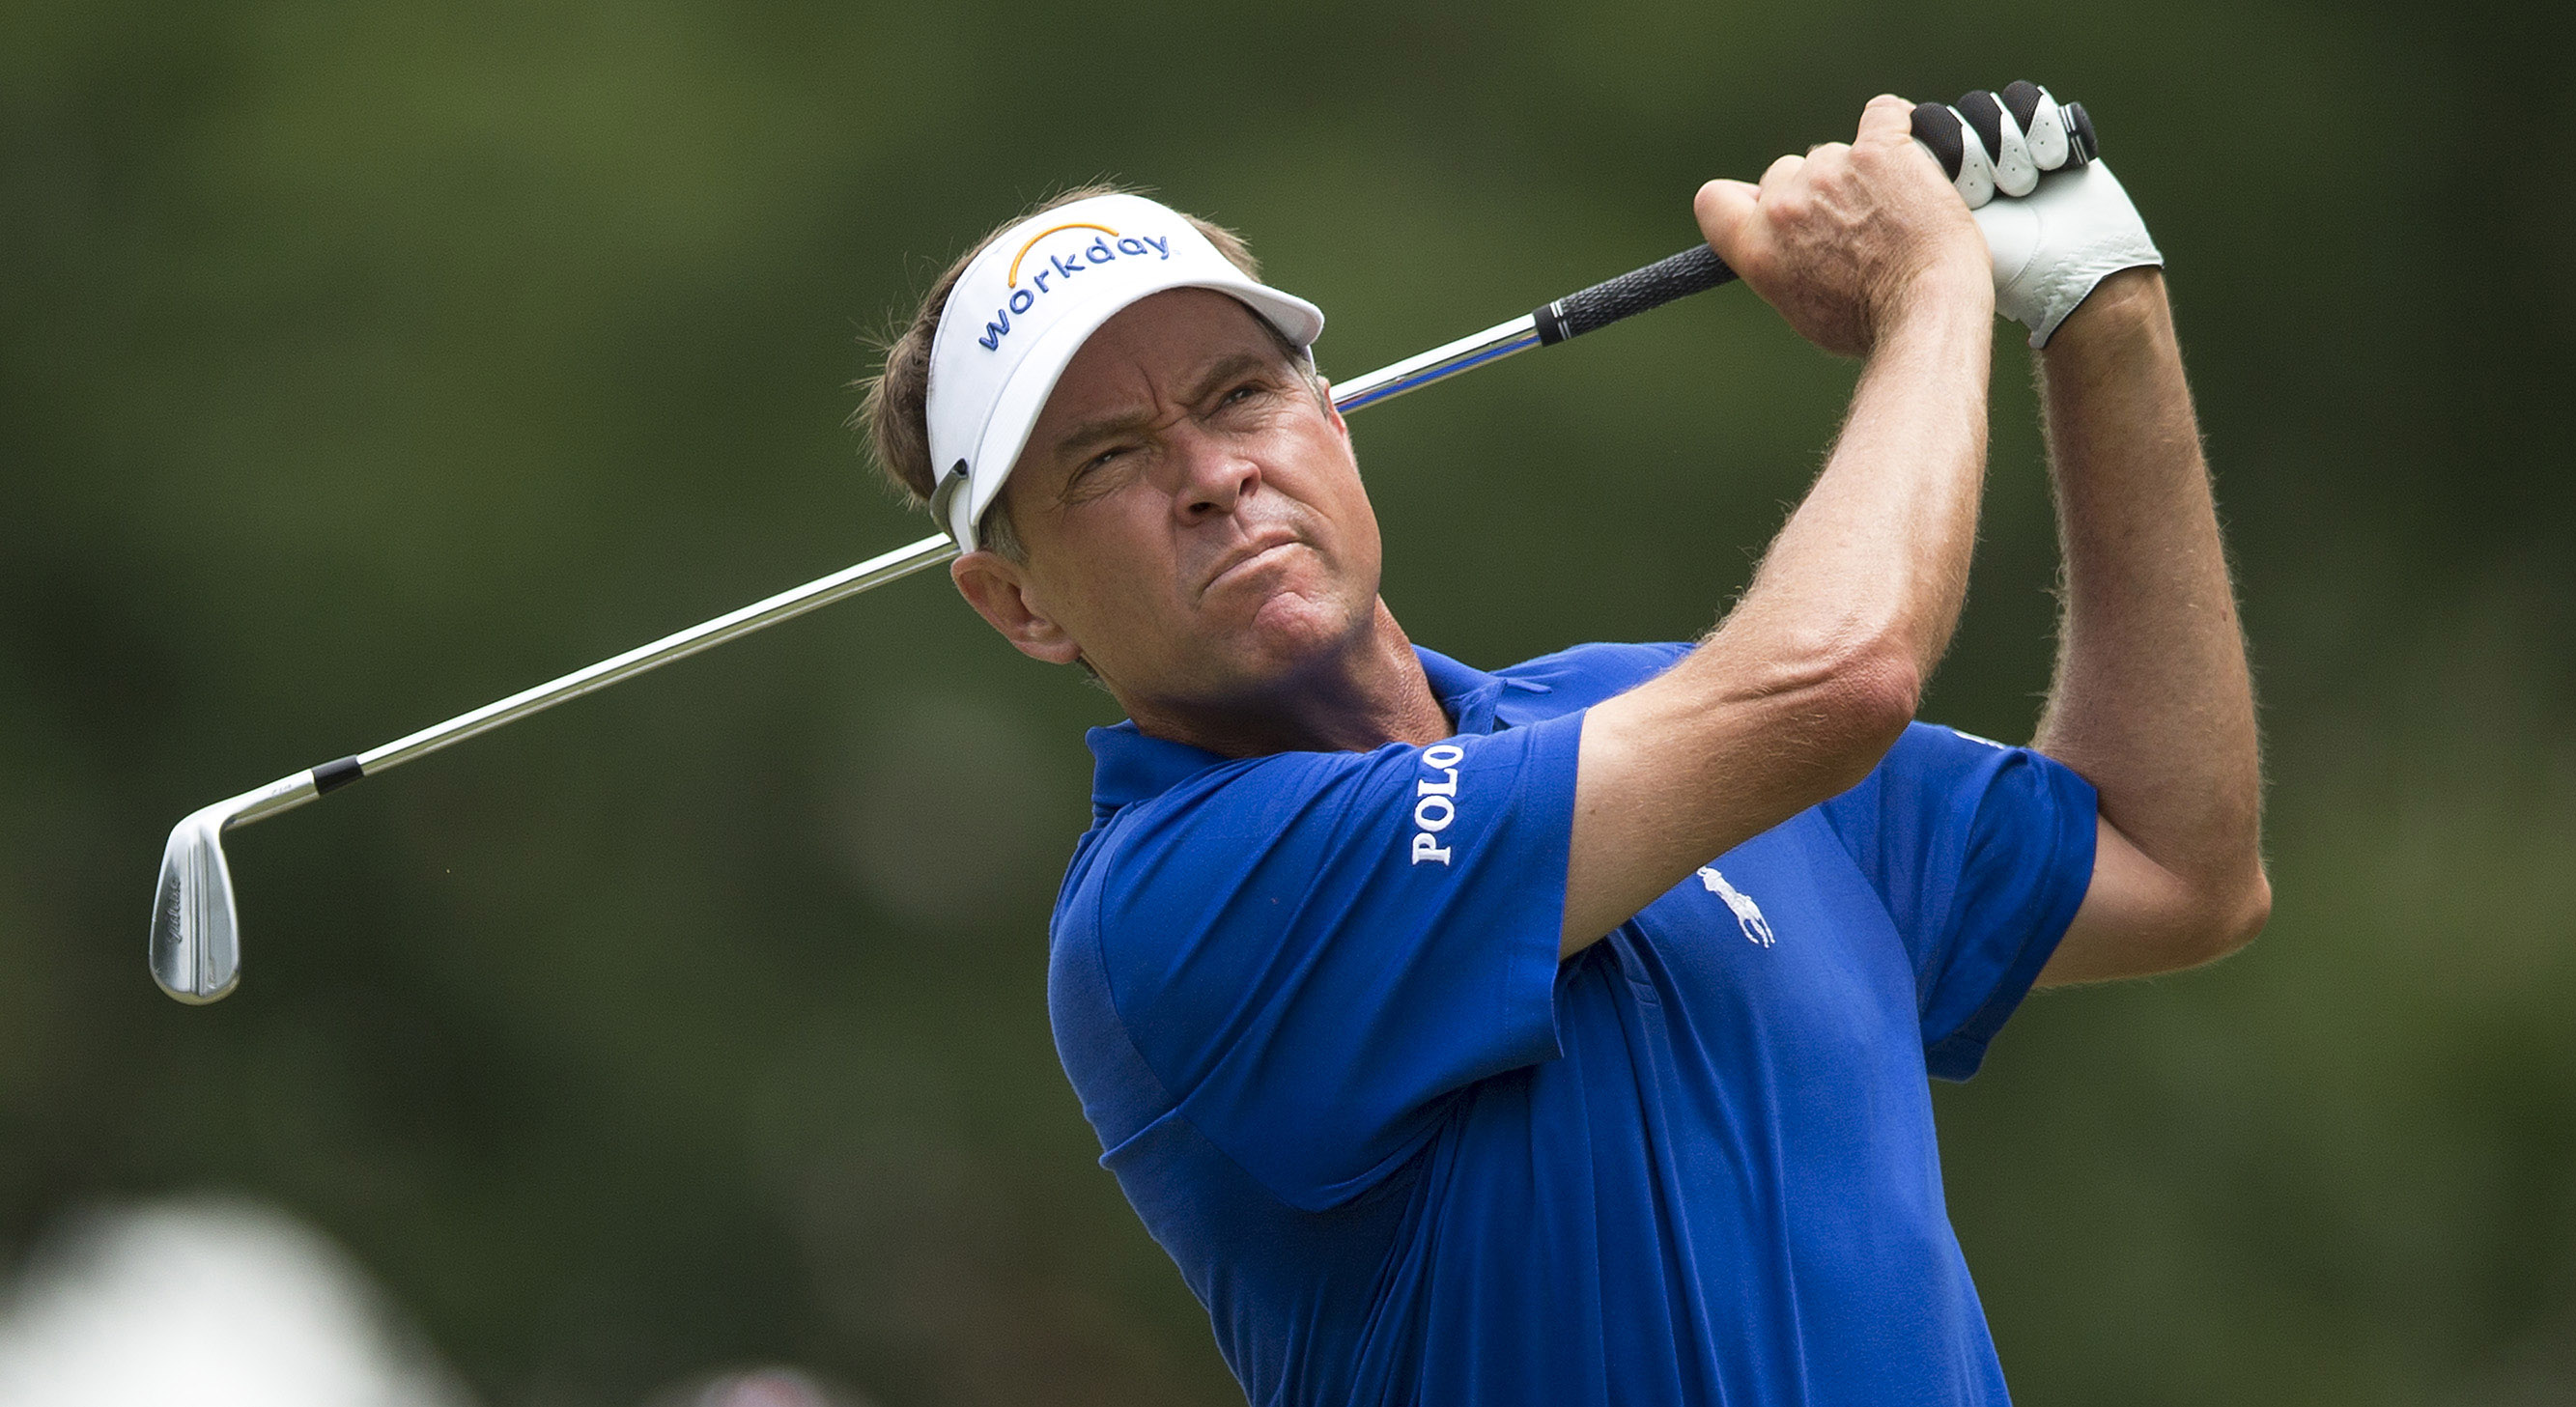 FILE - In this Sunday, Aug. 23, 2015 file photo, Davis Love III tees off on the third hole during the final round of the Wyndham Championship golf tournament at Sedgefield Country Club in Greensboro, N.C. The first golf lesson Davis Love Jr. gave to his s